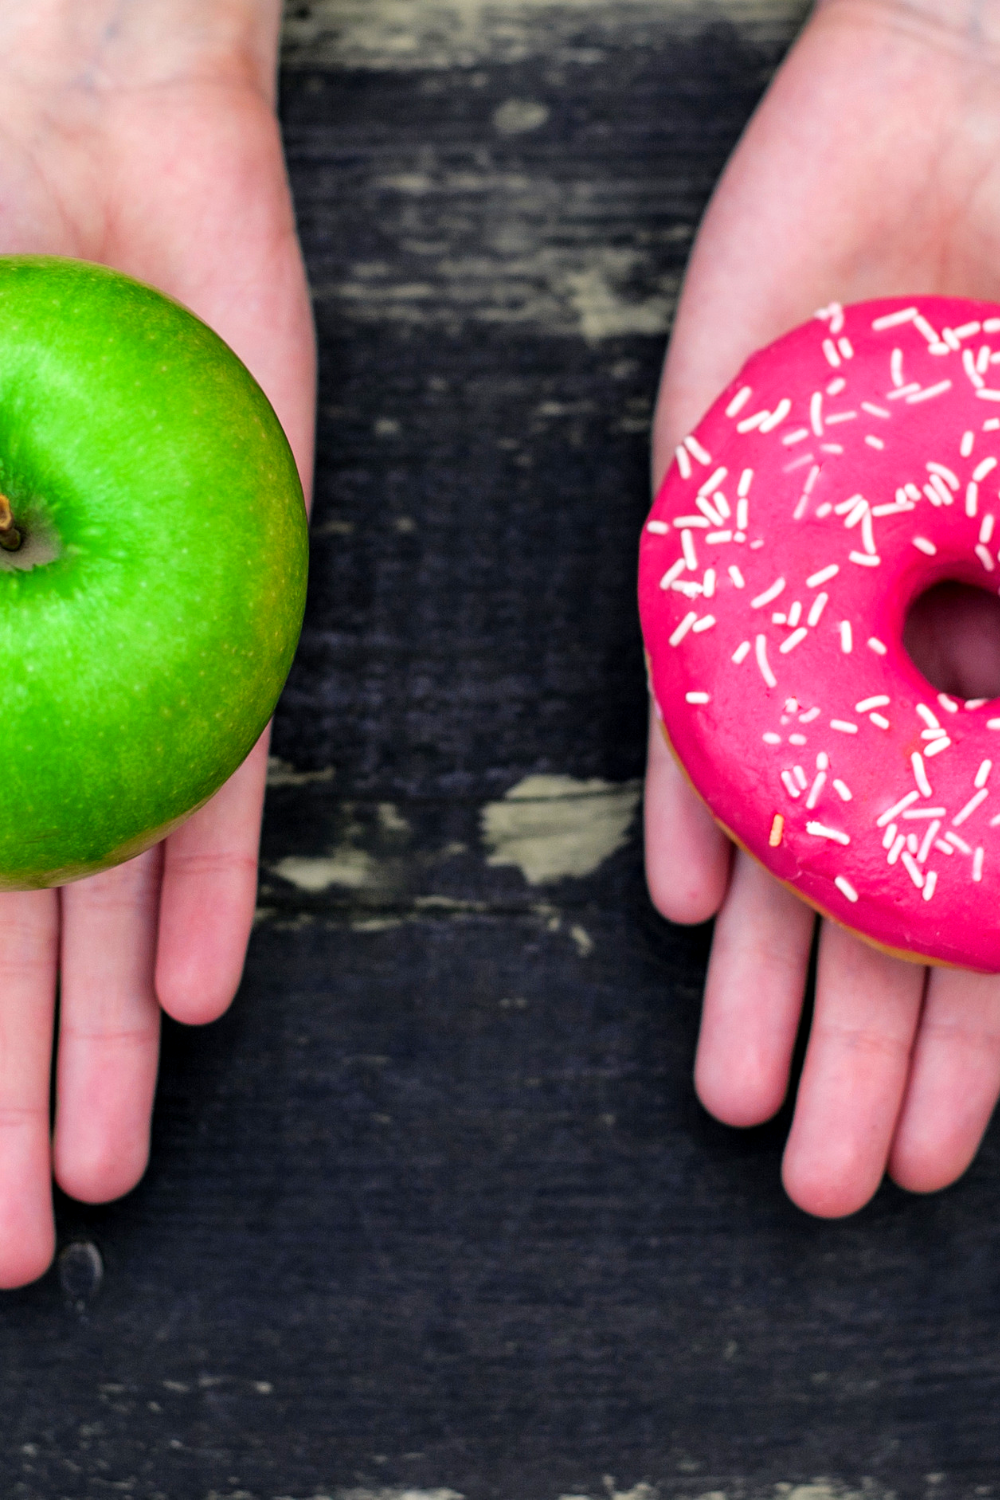 Here are 9 easy ways to build healthy habits <3 #health #healthy #habit #advice #tips #fitness